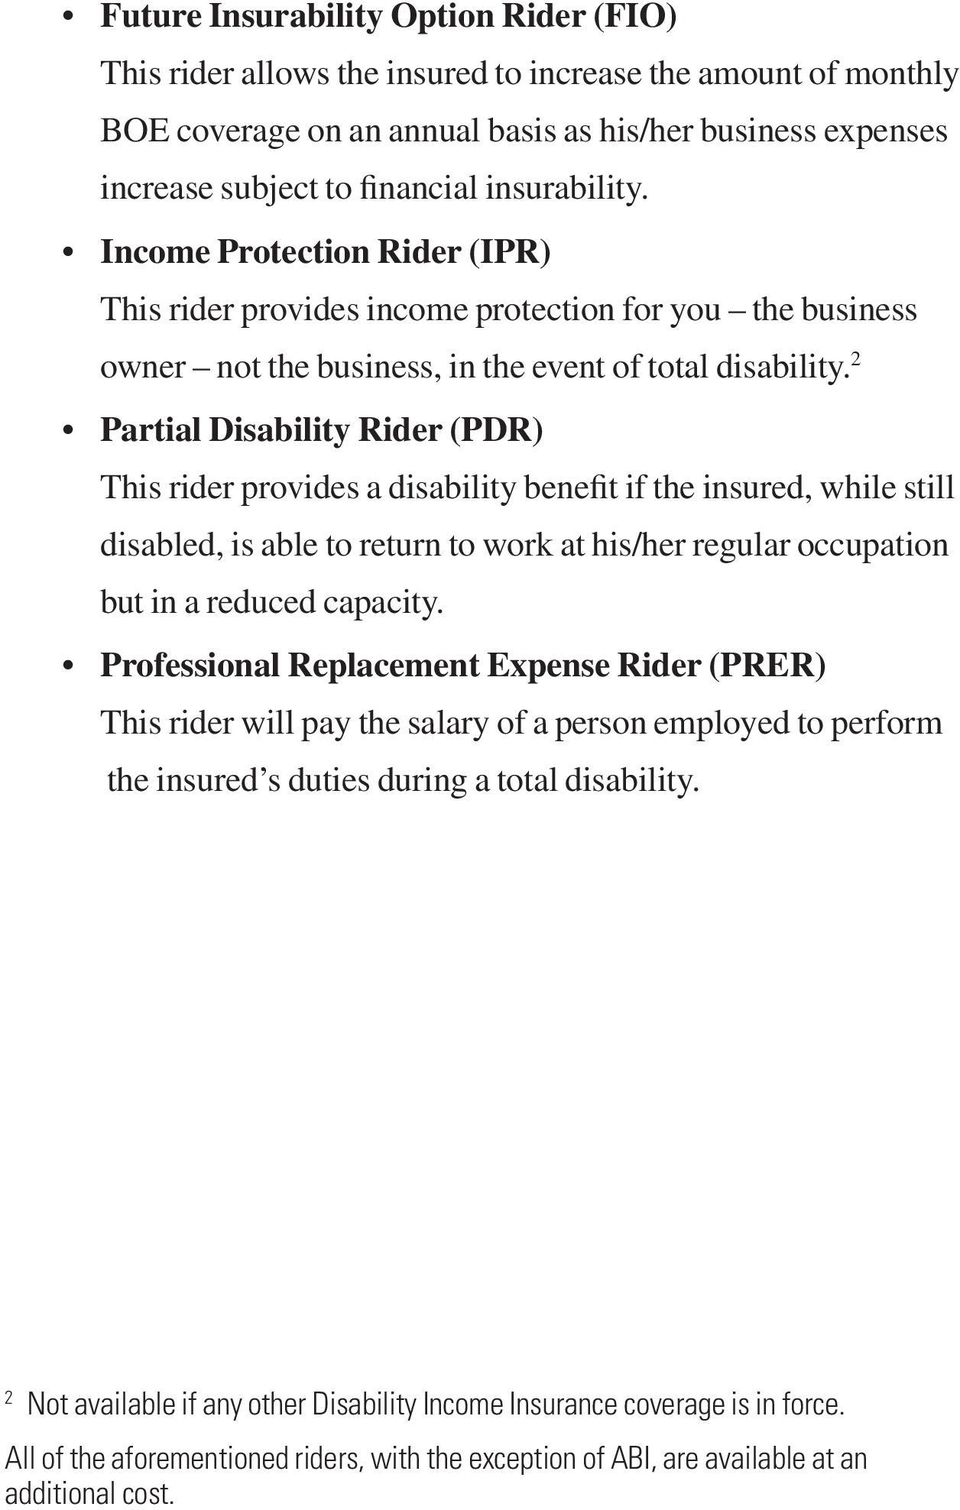 2 Partial Disability Rider (PDR) This rider provides a disability benefit if the insured, while still disabled, is able to return to work at his/her regular occupation but in a reduced capacity.